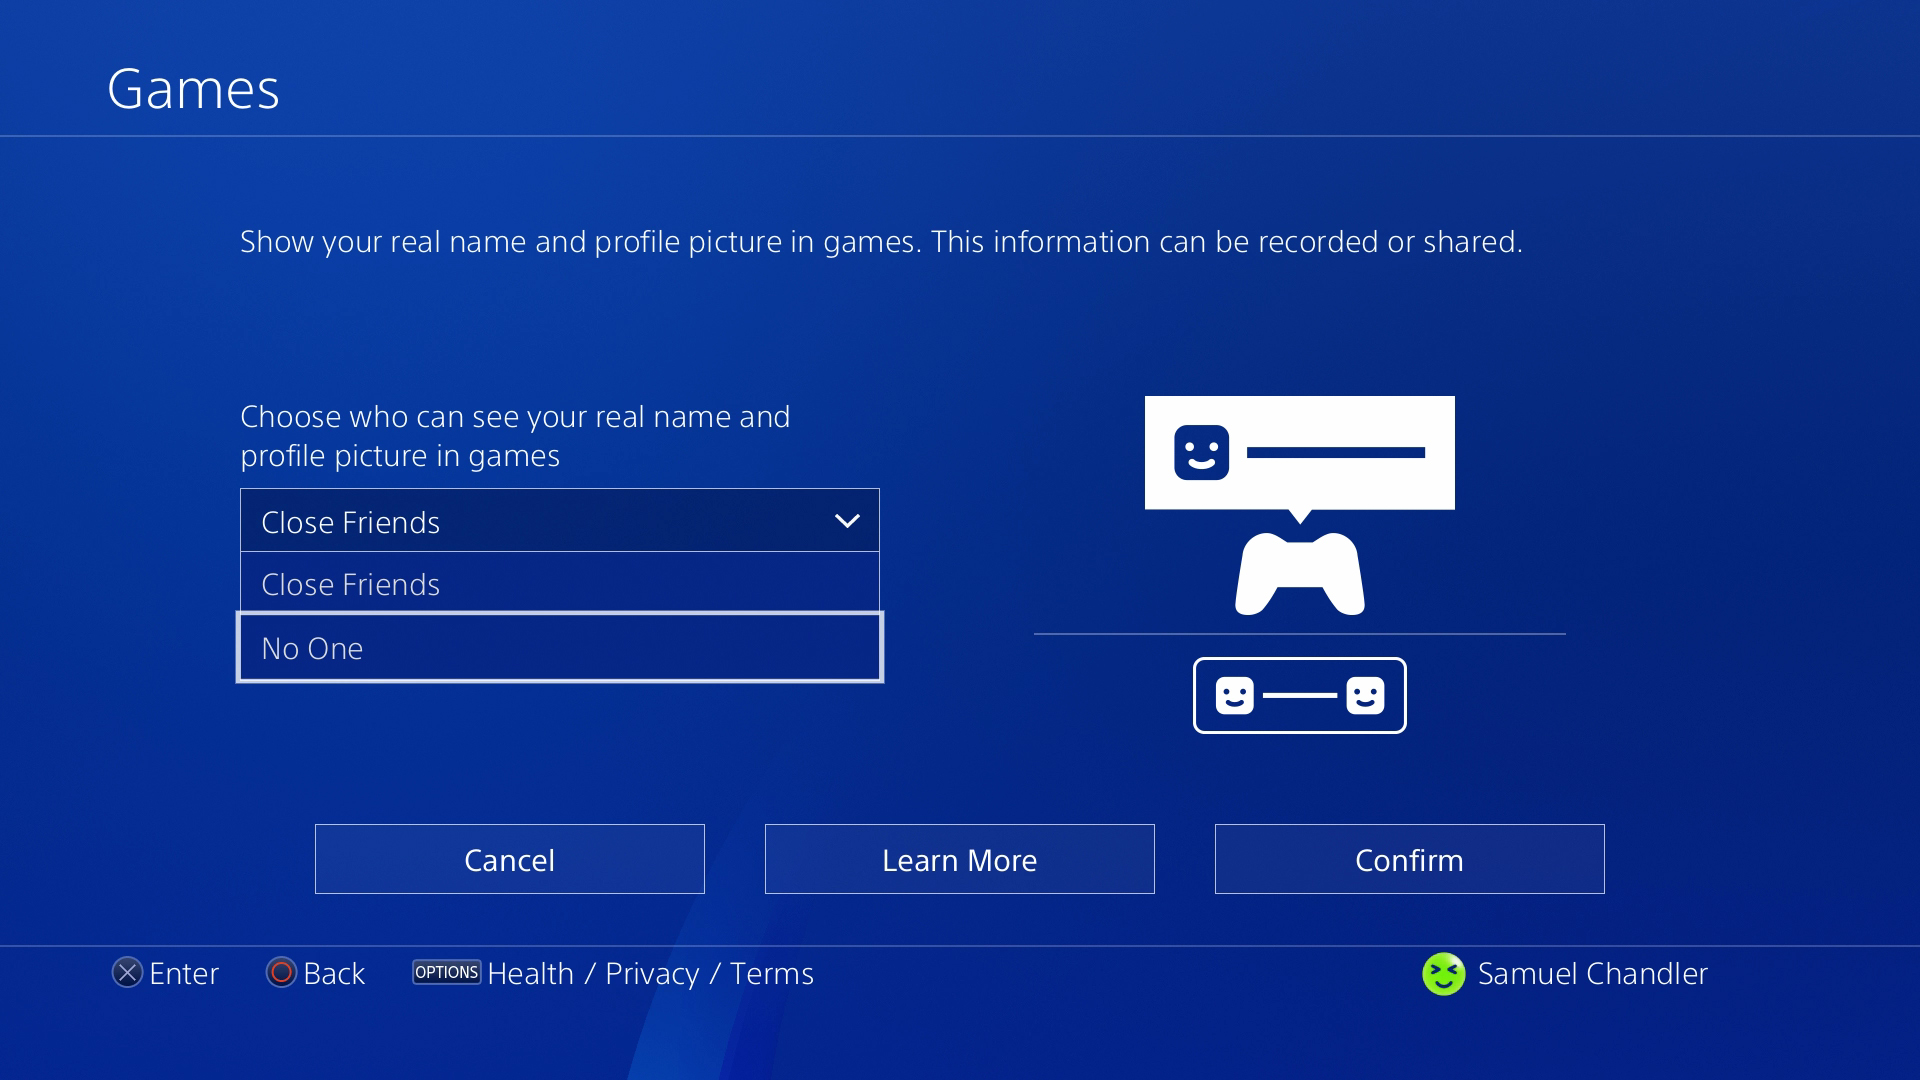 People online don't need to see your real name, so go ahead and hide it to improve your PSN security.